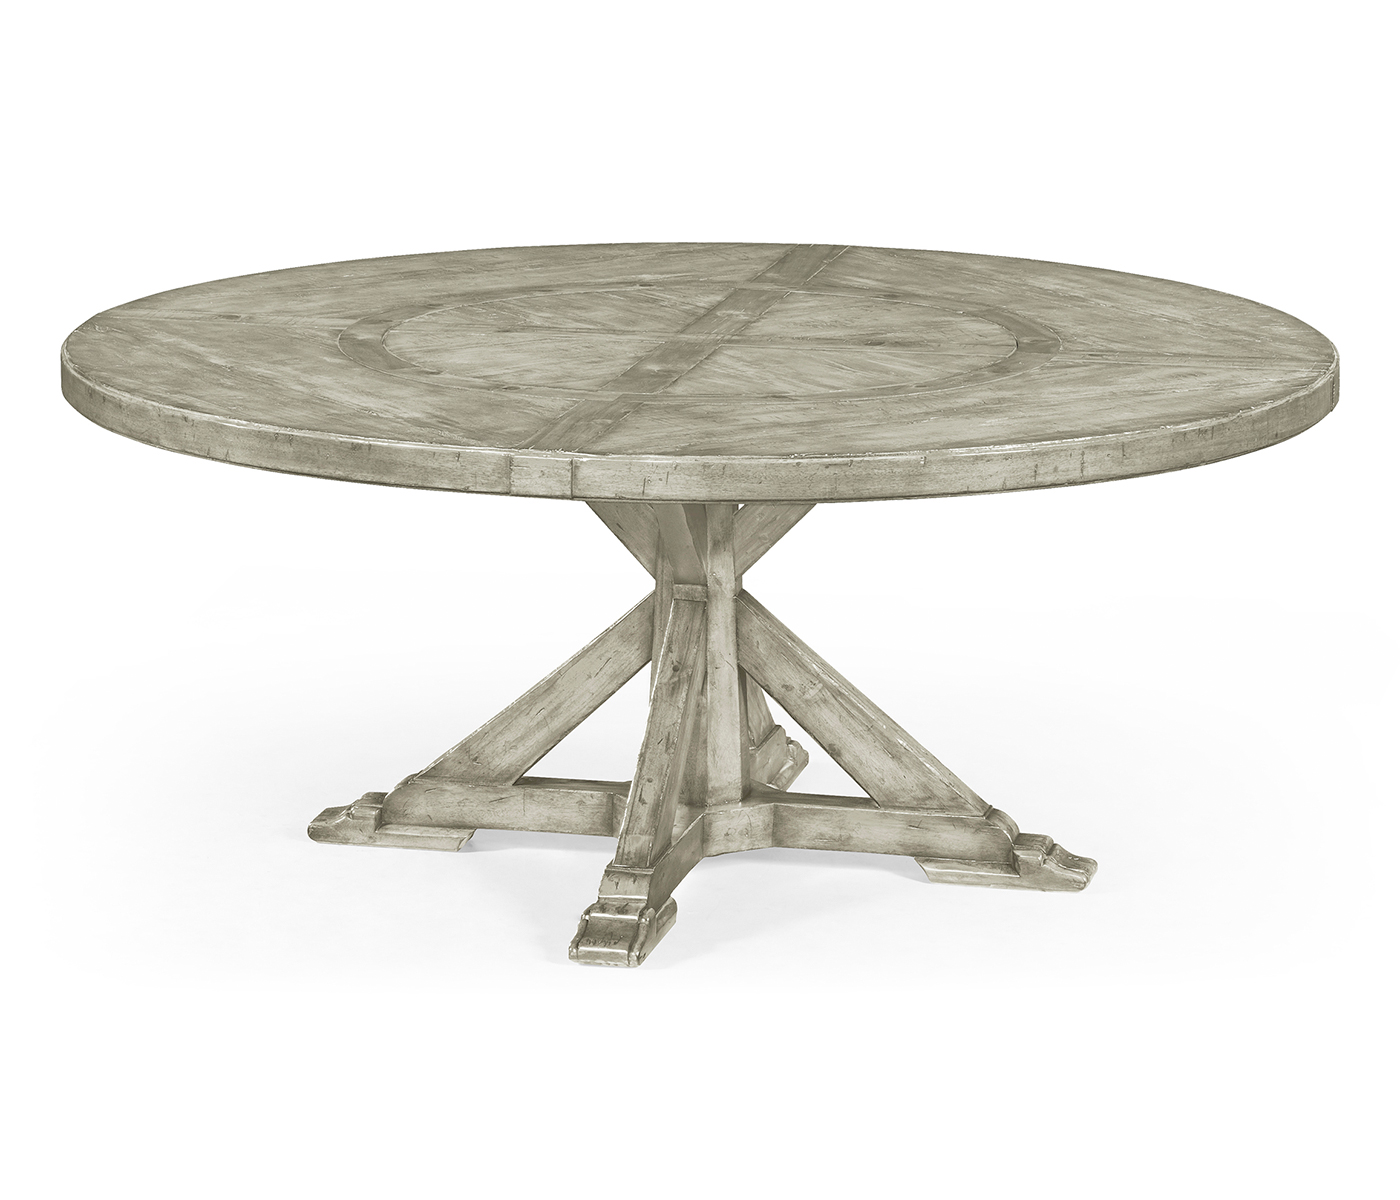 72 Rustic Grey Round Dining Table With Inbuilt Lazy Susan